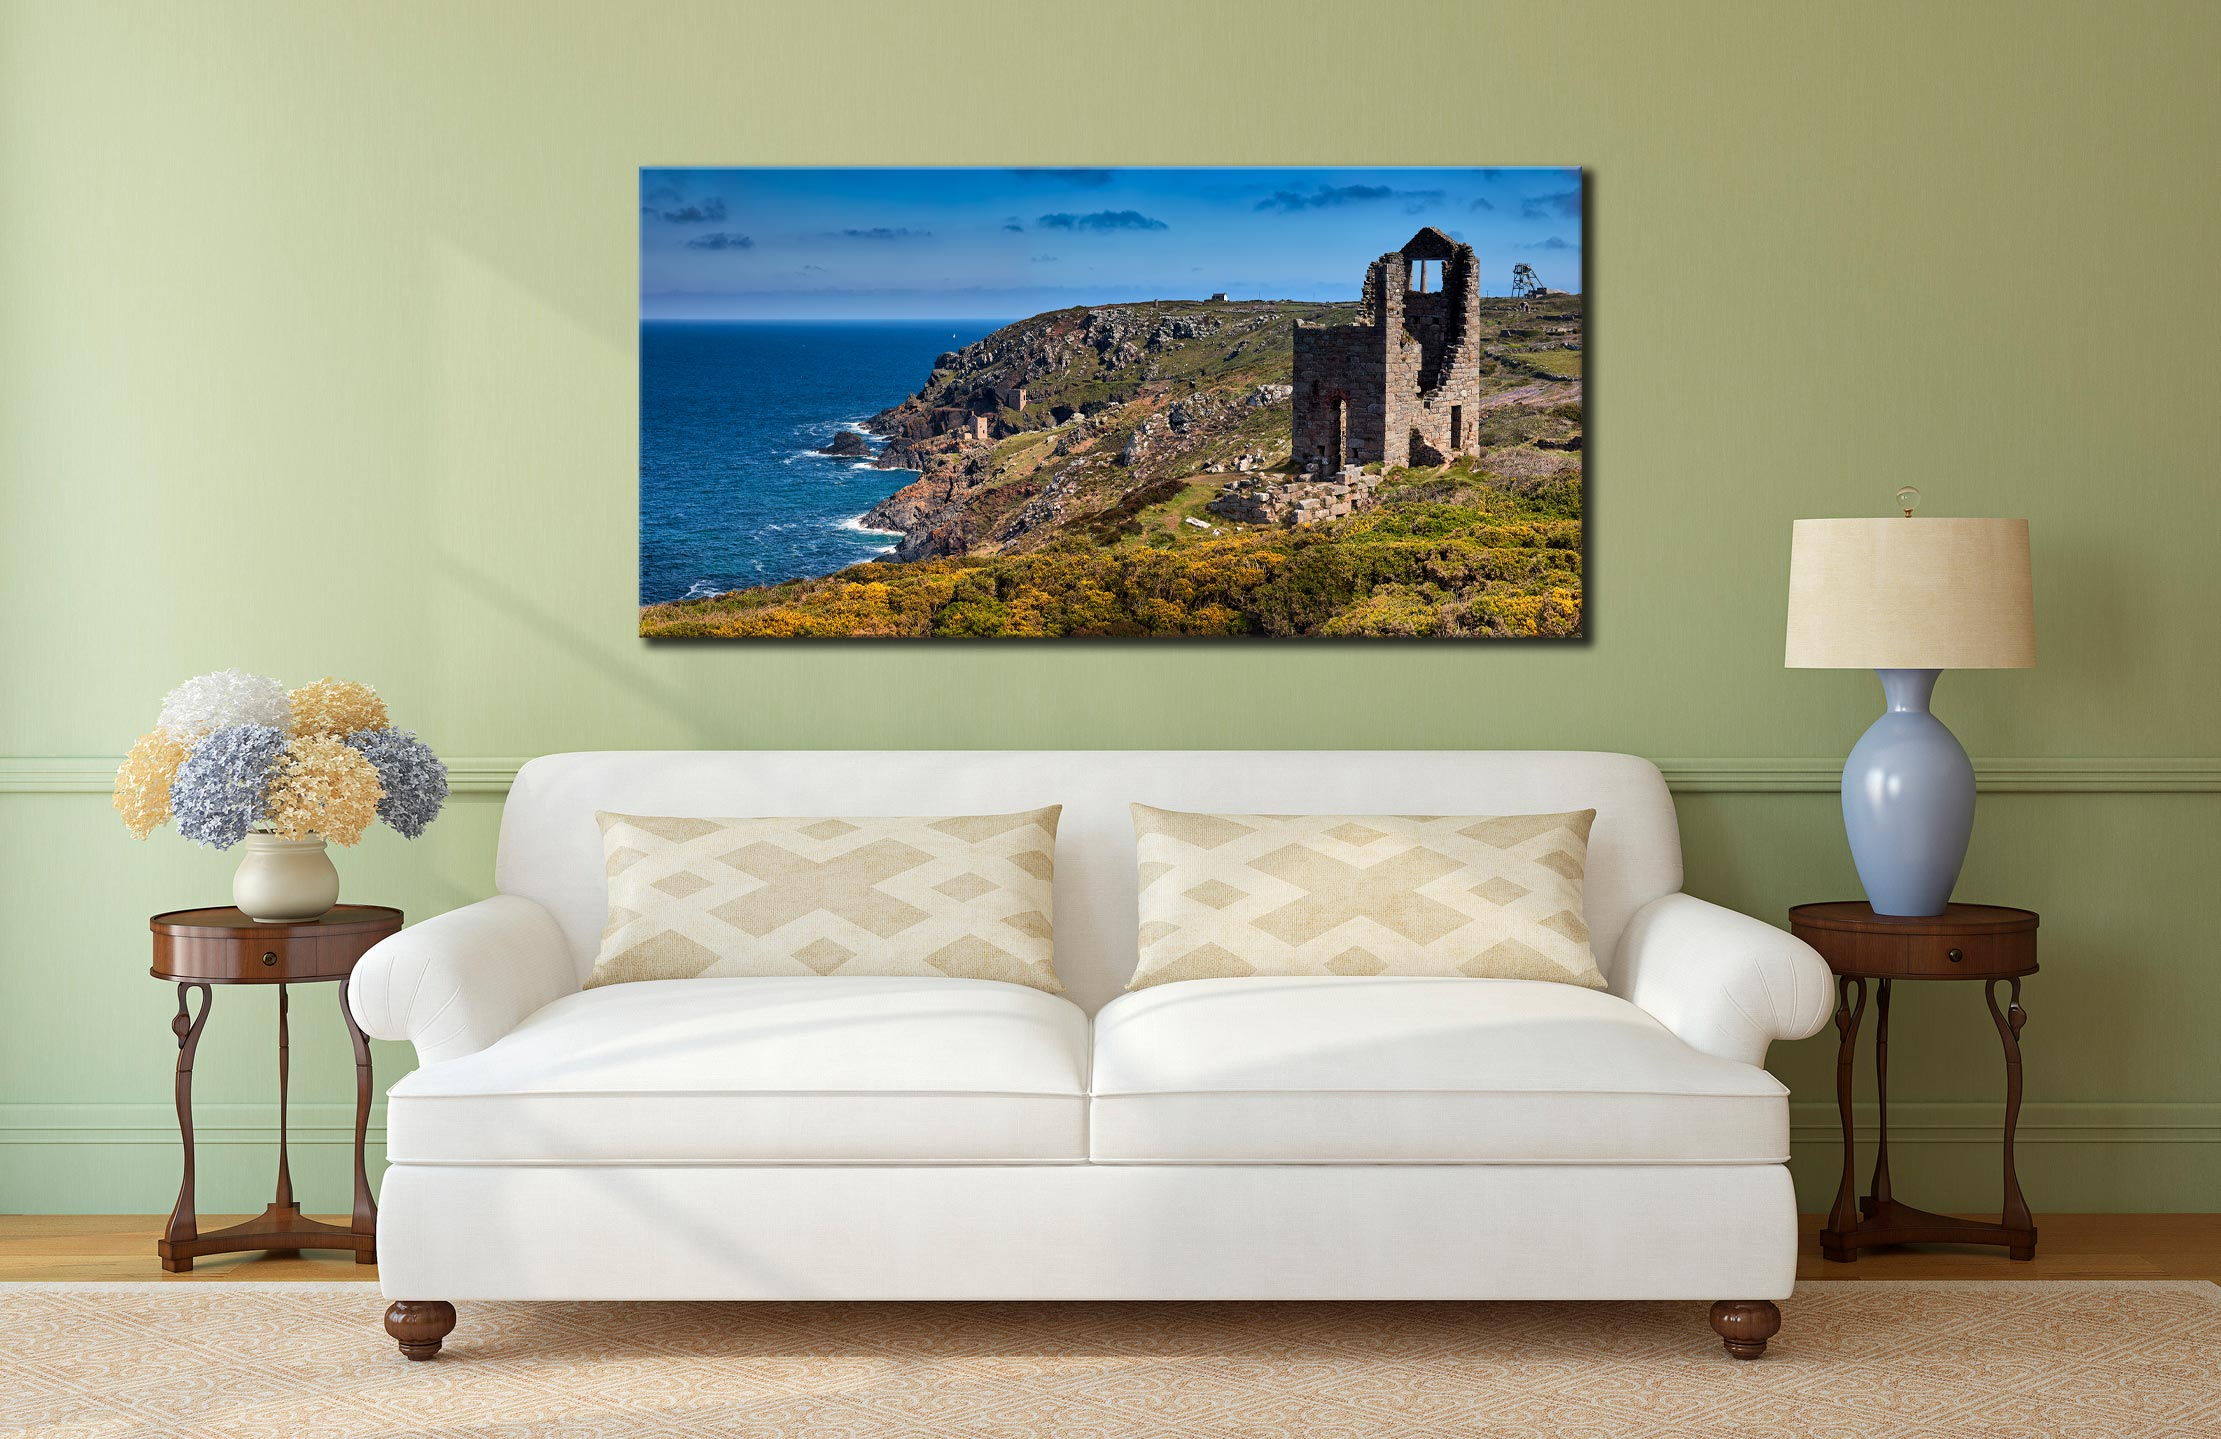 Mining Coast of Botallack - Canvas Print on Wall